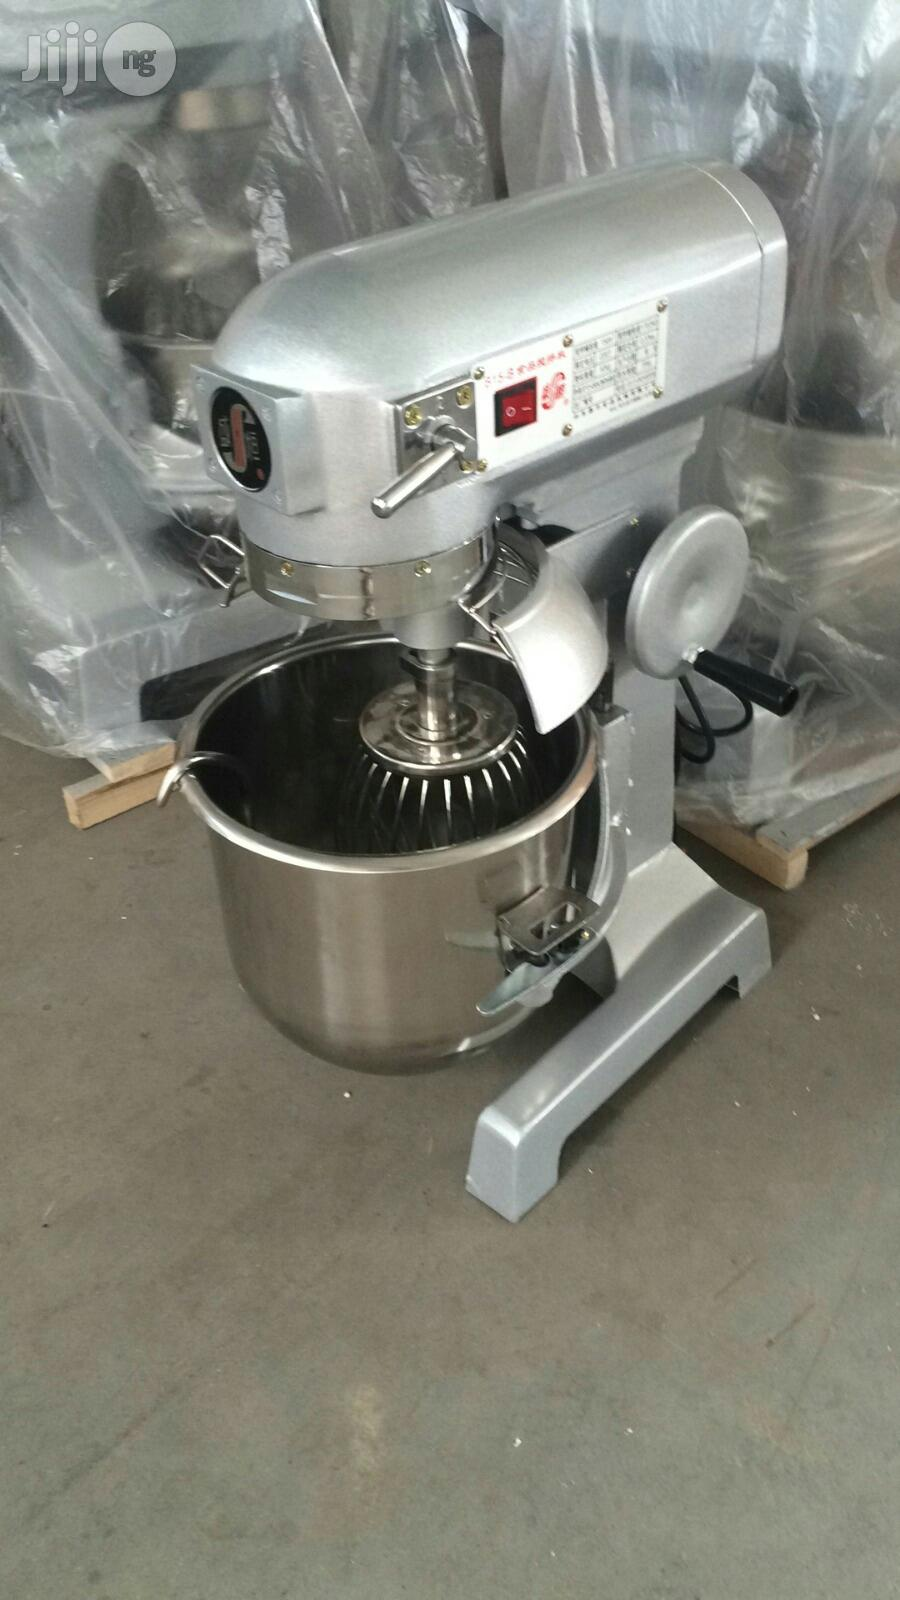 20liters Cake Mixer | Restaurant & Catering Equipment for sale in Ojo, Lagos State, Nigeria